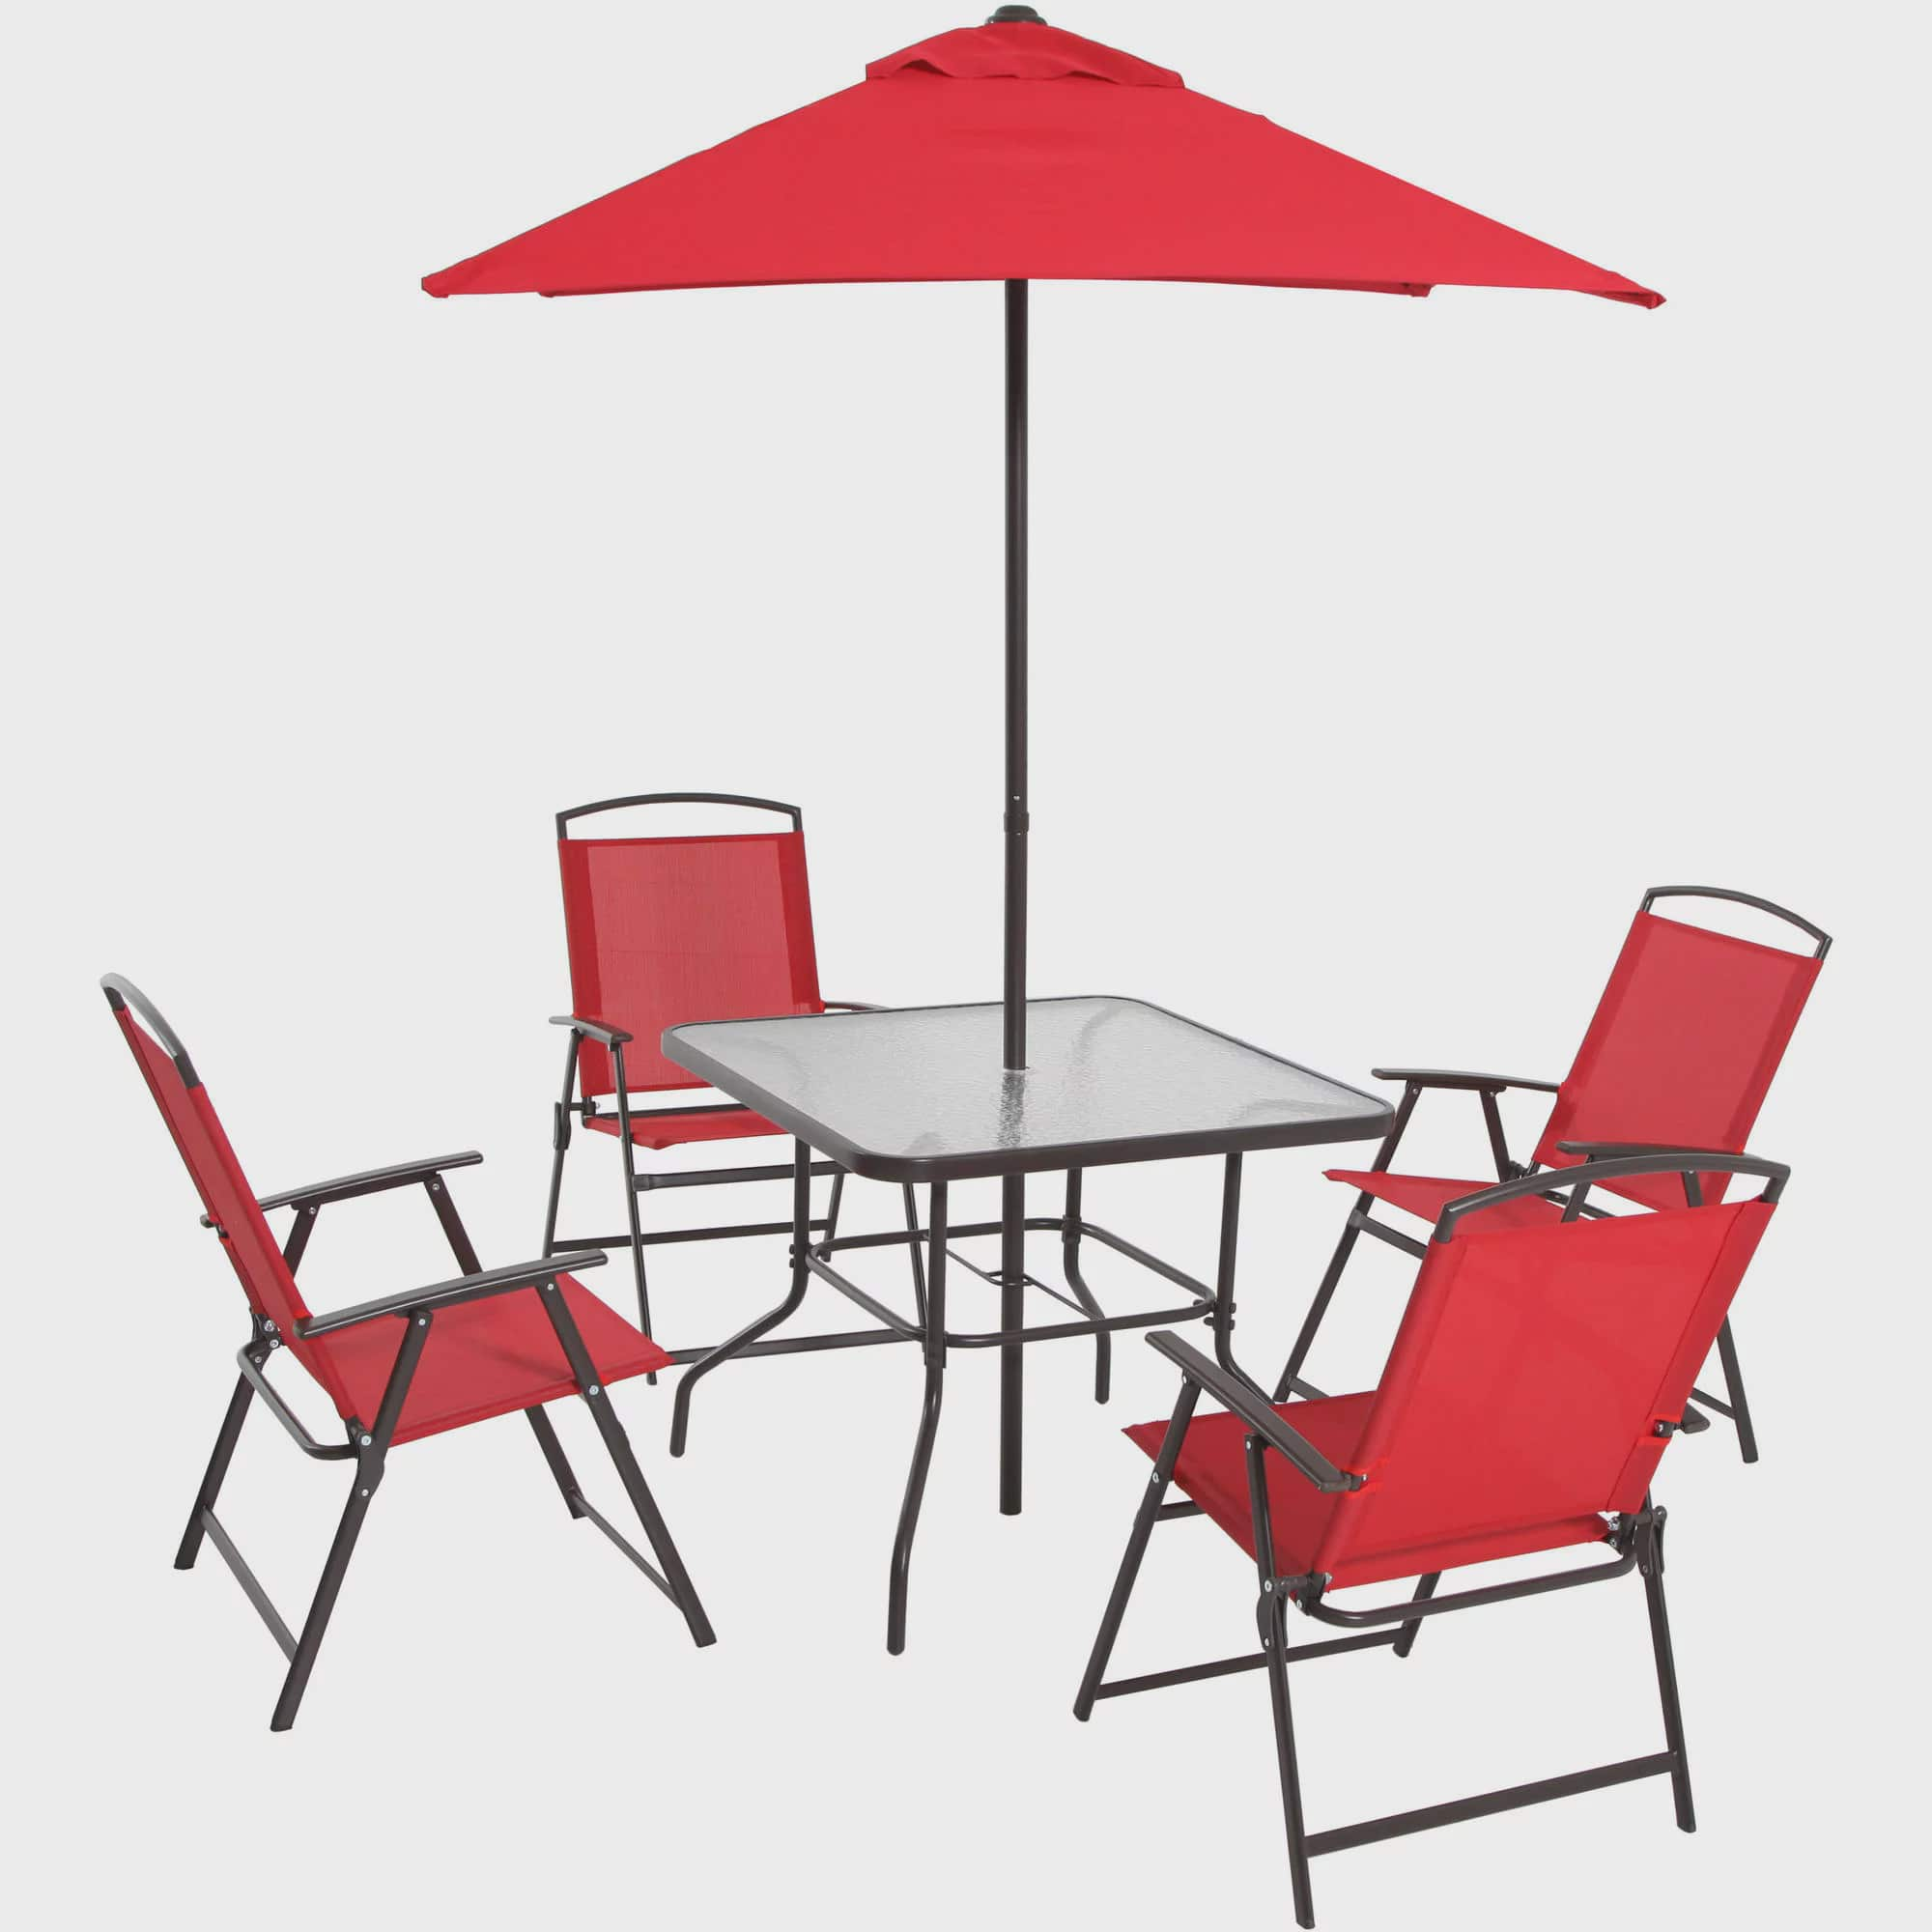 umbrellas parasols pressure heat parasol base reduces air umbrella ikea bases gazebos en vent garden the products and to gb seglar allows wind beige hanging circulate tilting